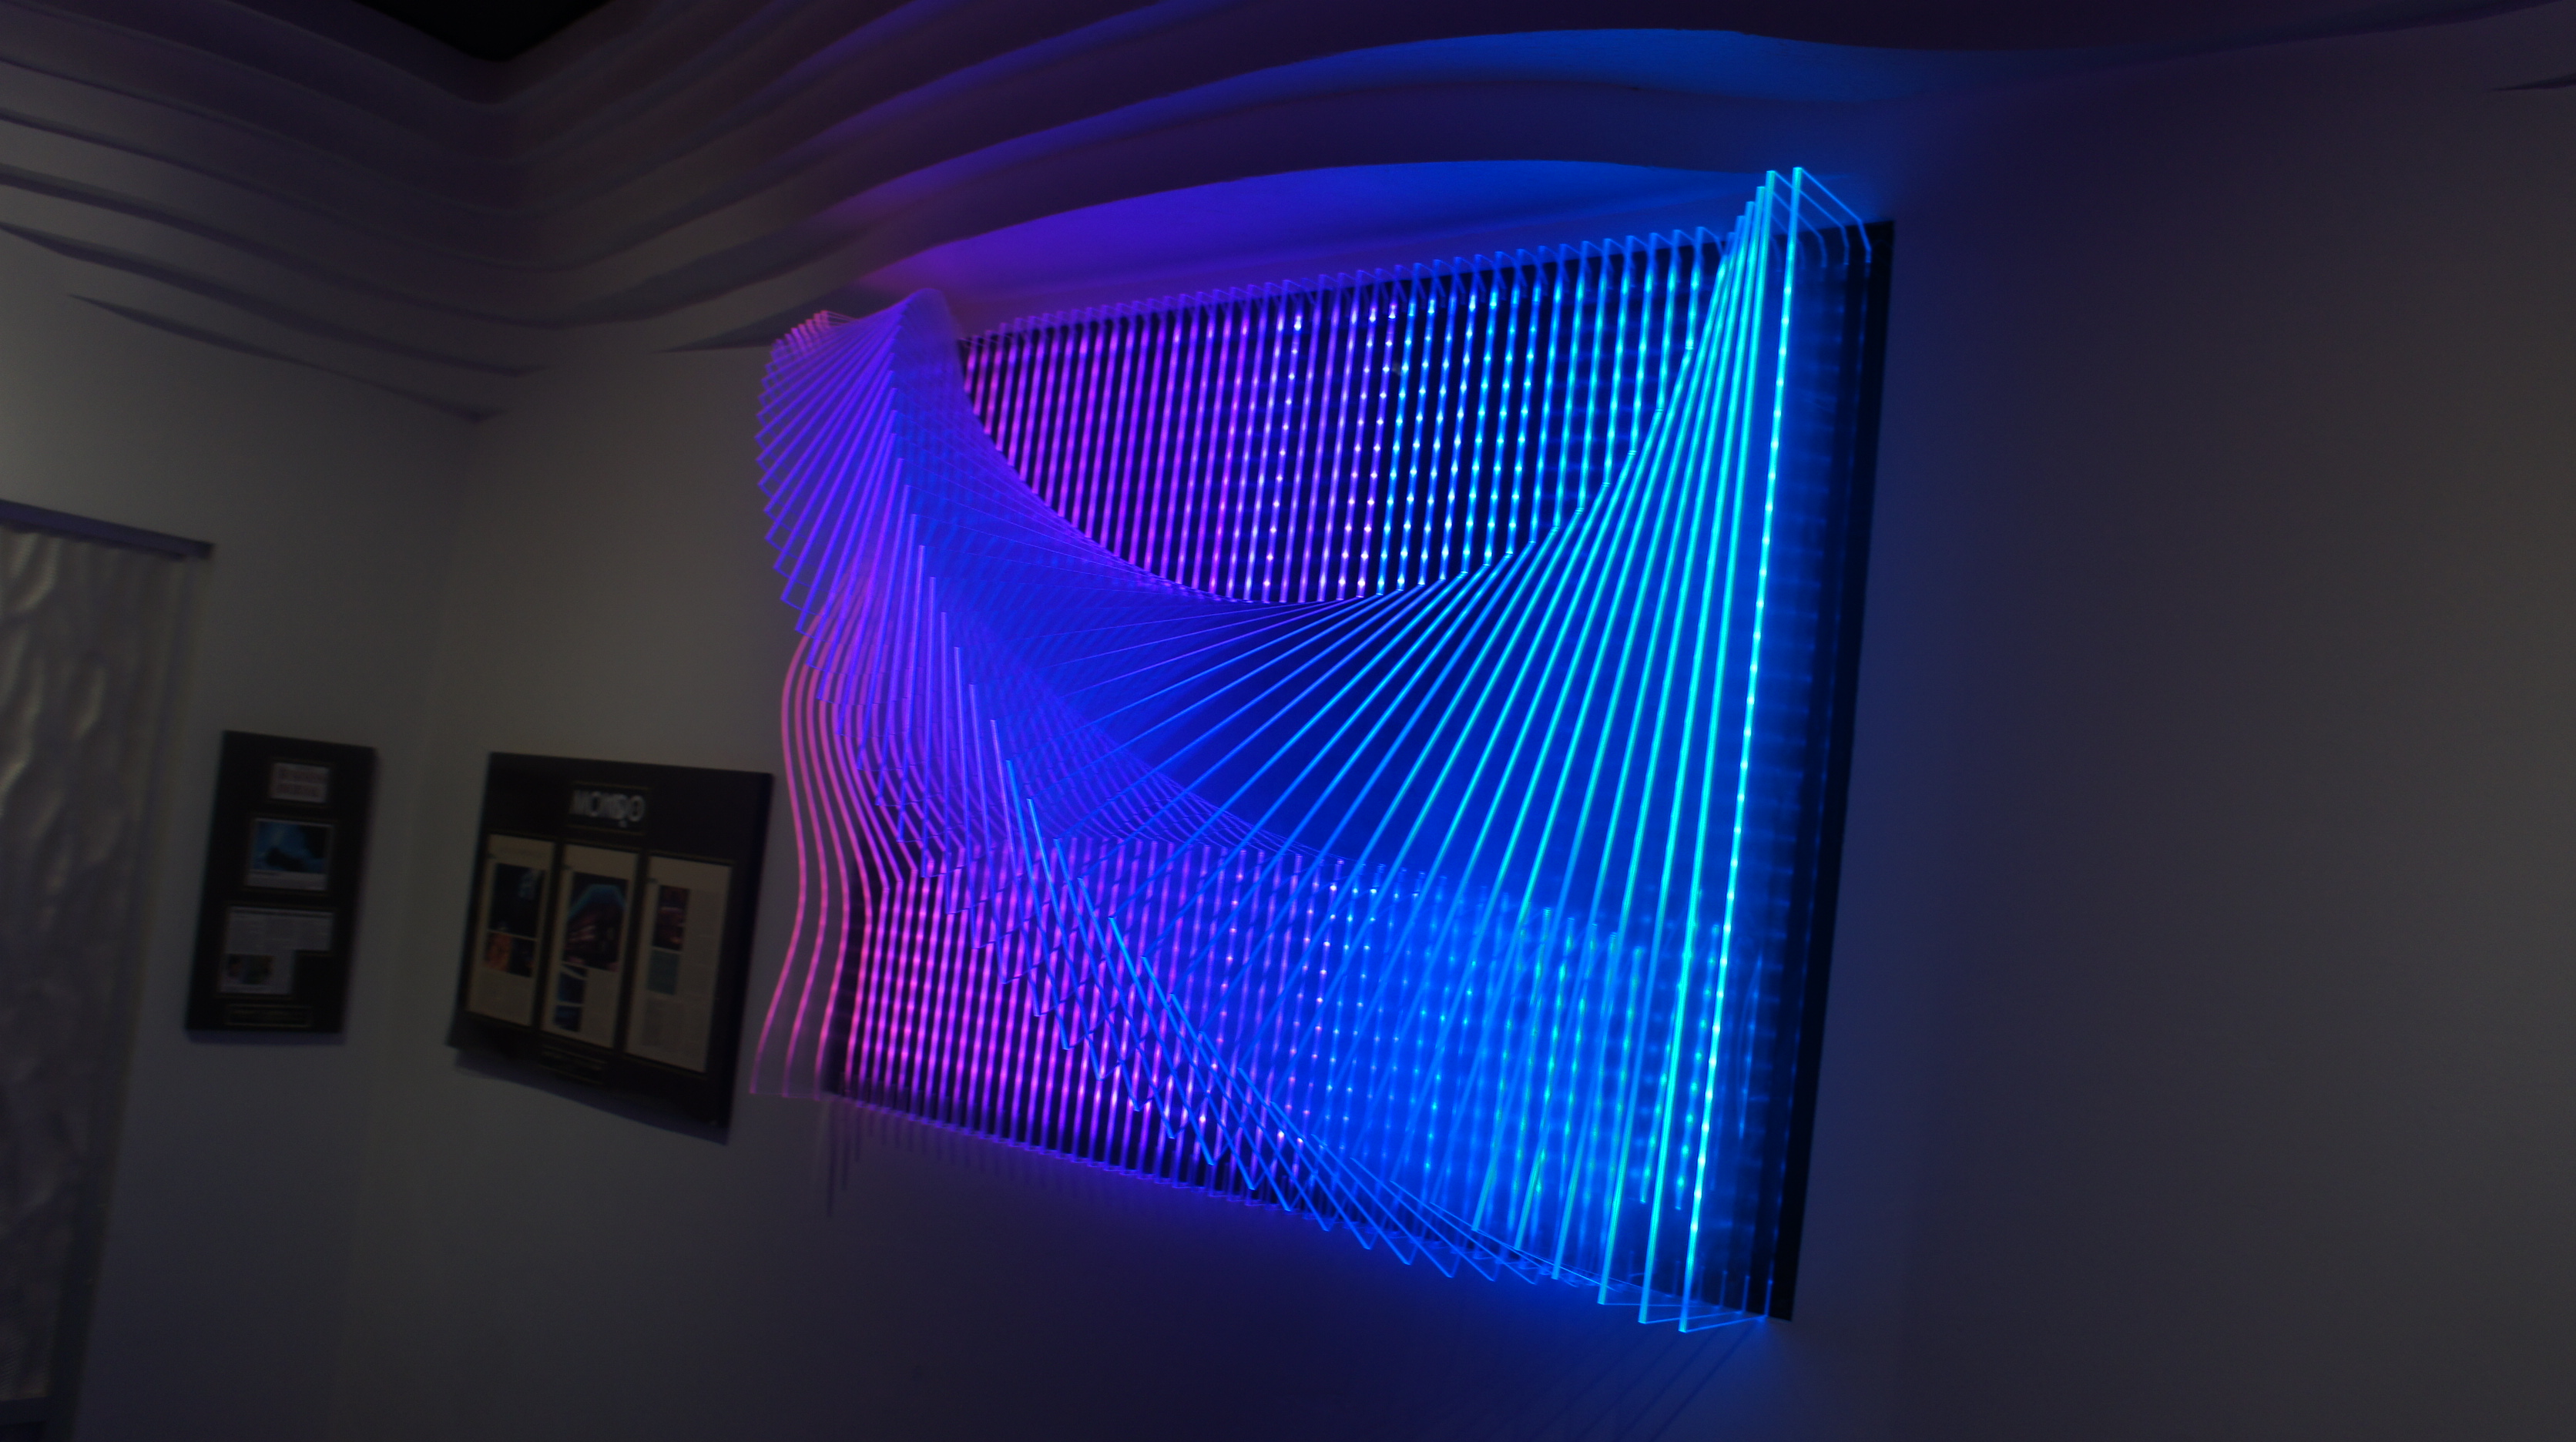 3d Dekoration Led Wall Art With Led Lights The Art Of The Future Warisan